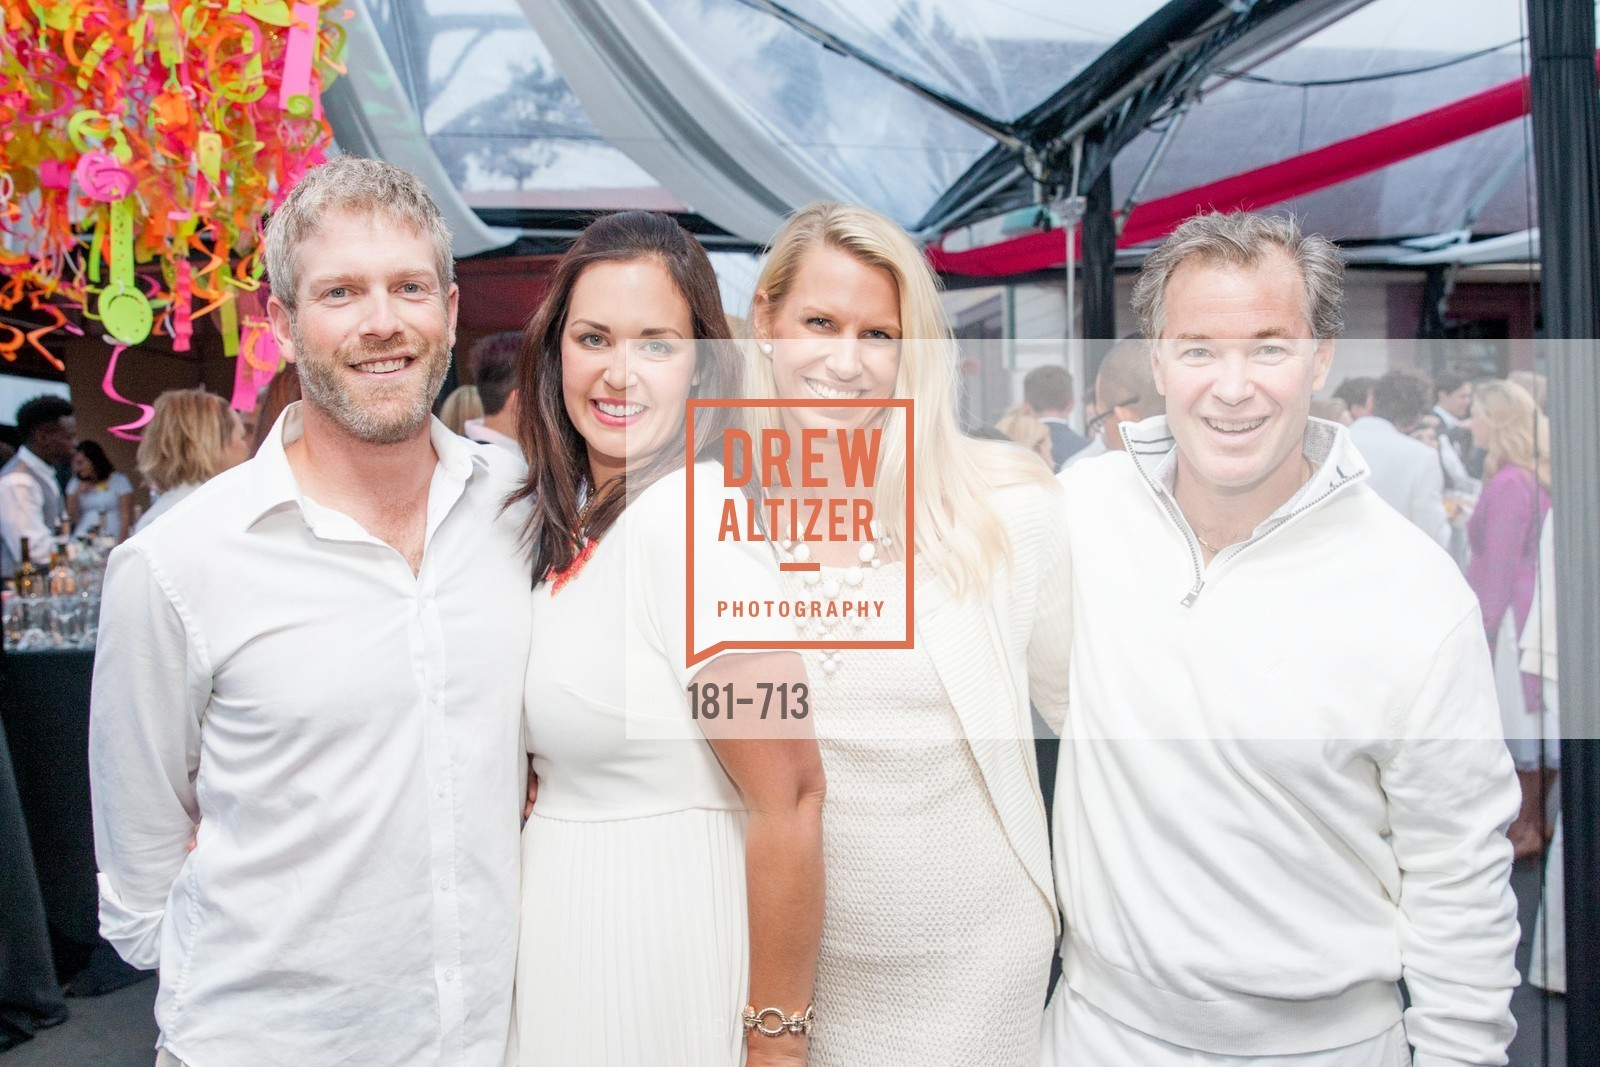 Adam Fliss, Beth Fliss, Karen Horton, Michael Horton, THE BAY AREA DISCOVERY MUSEUM'S Playdate 2015:  White to Bright, US, May 8th, 2015,Drew Altizer, Drew Altizer Photography, full-service agency, private events, San Francisco photographer, photographer california